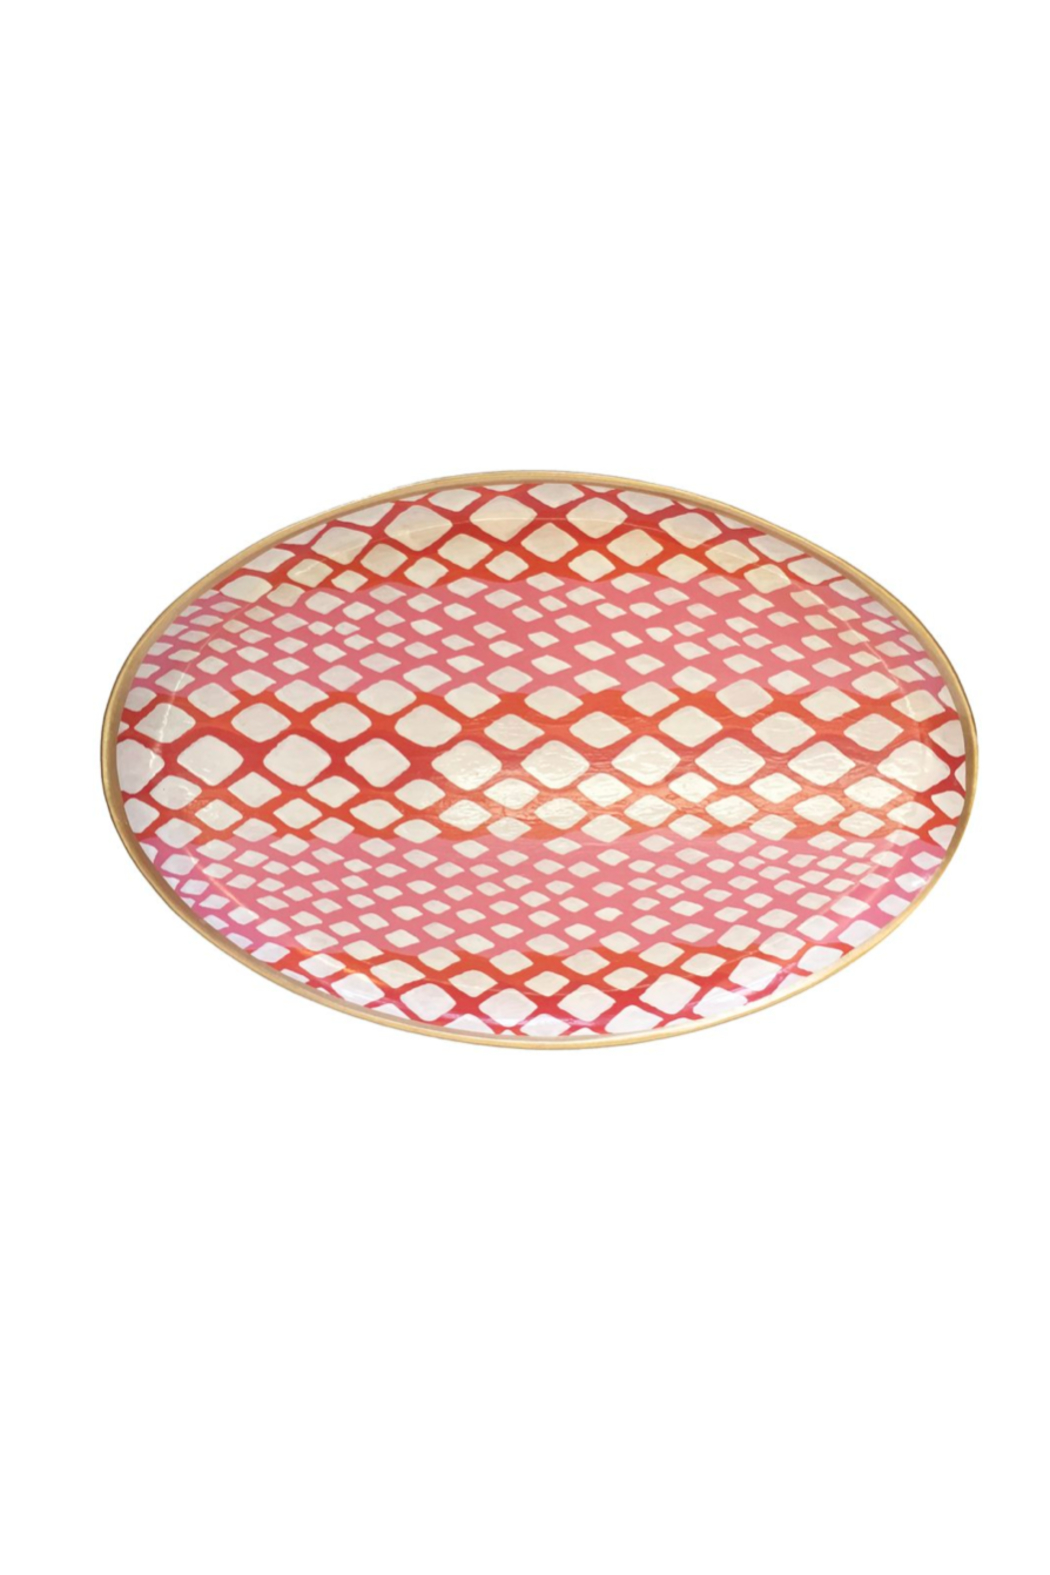 Dana Gibson Oval Python Platter Tray - Front Cropped Image